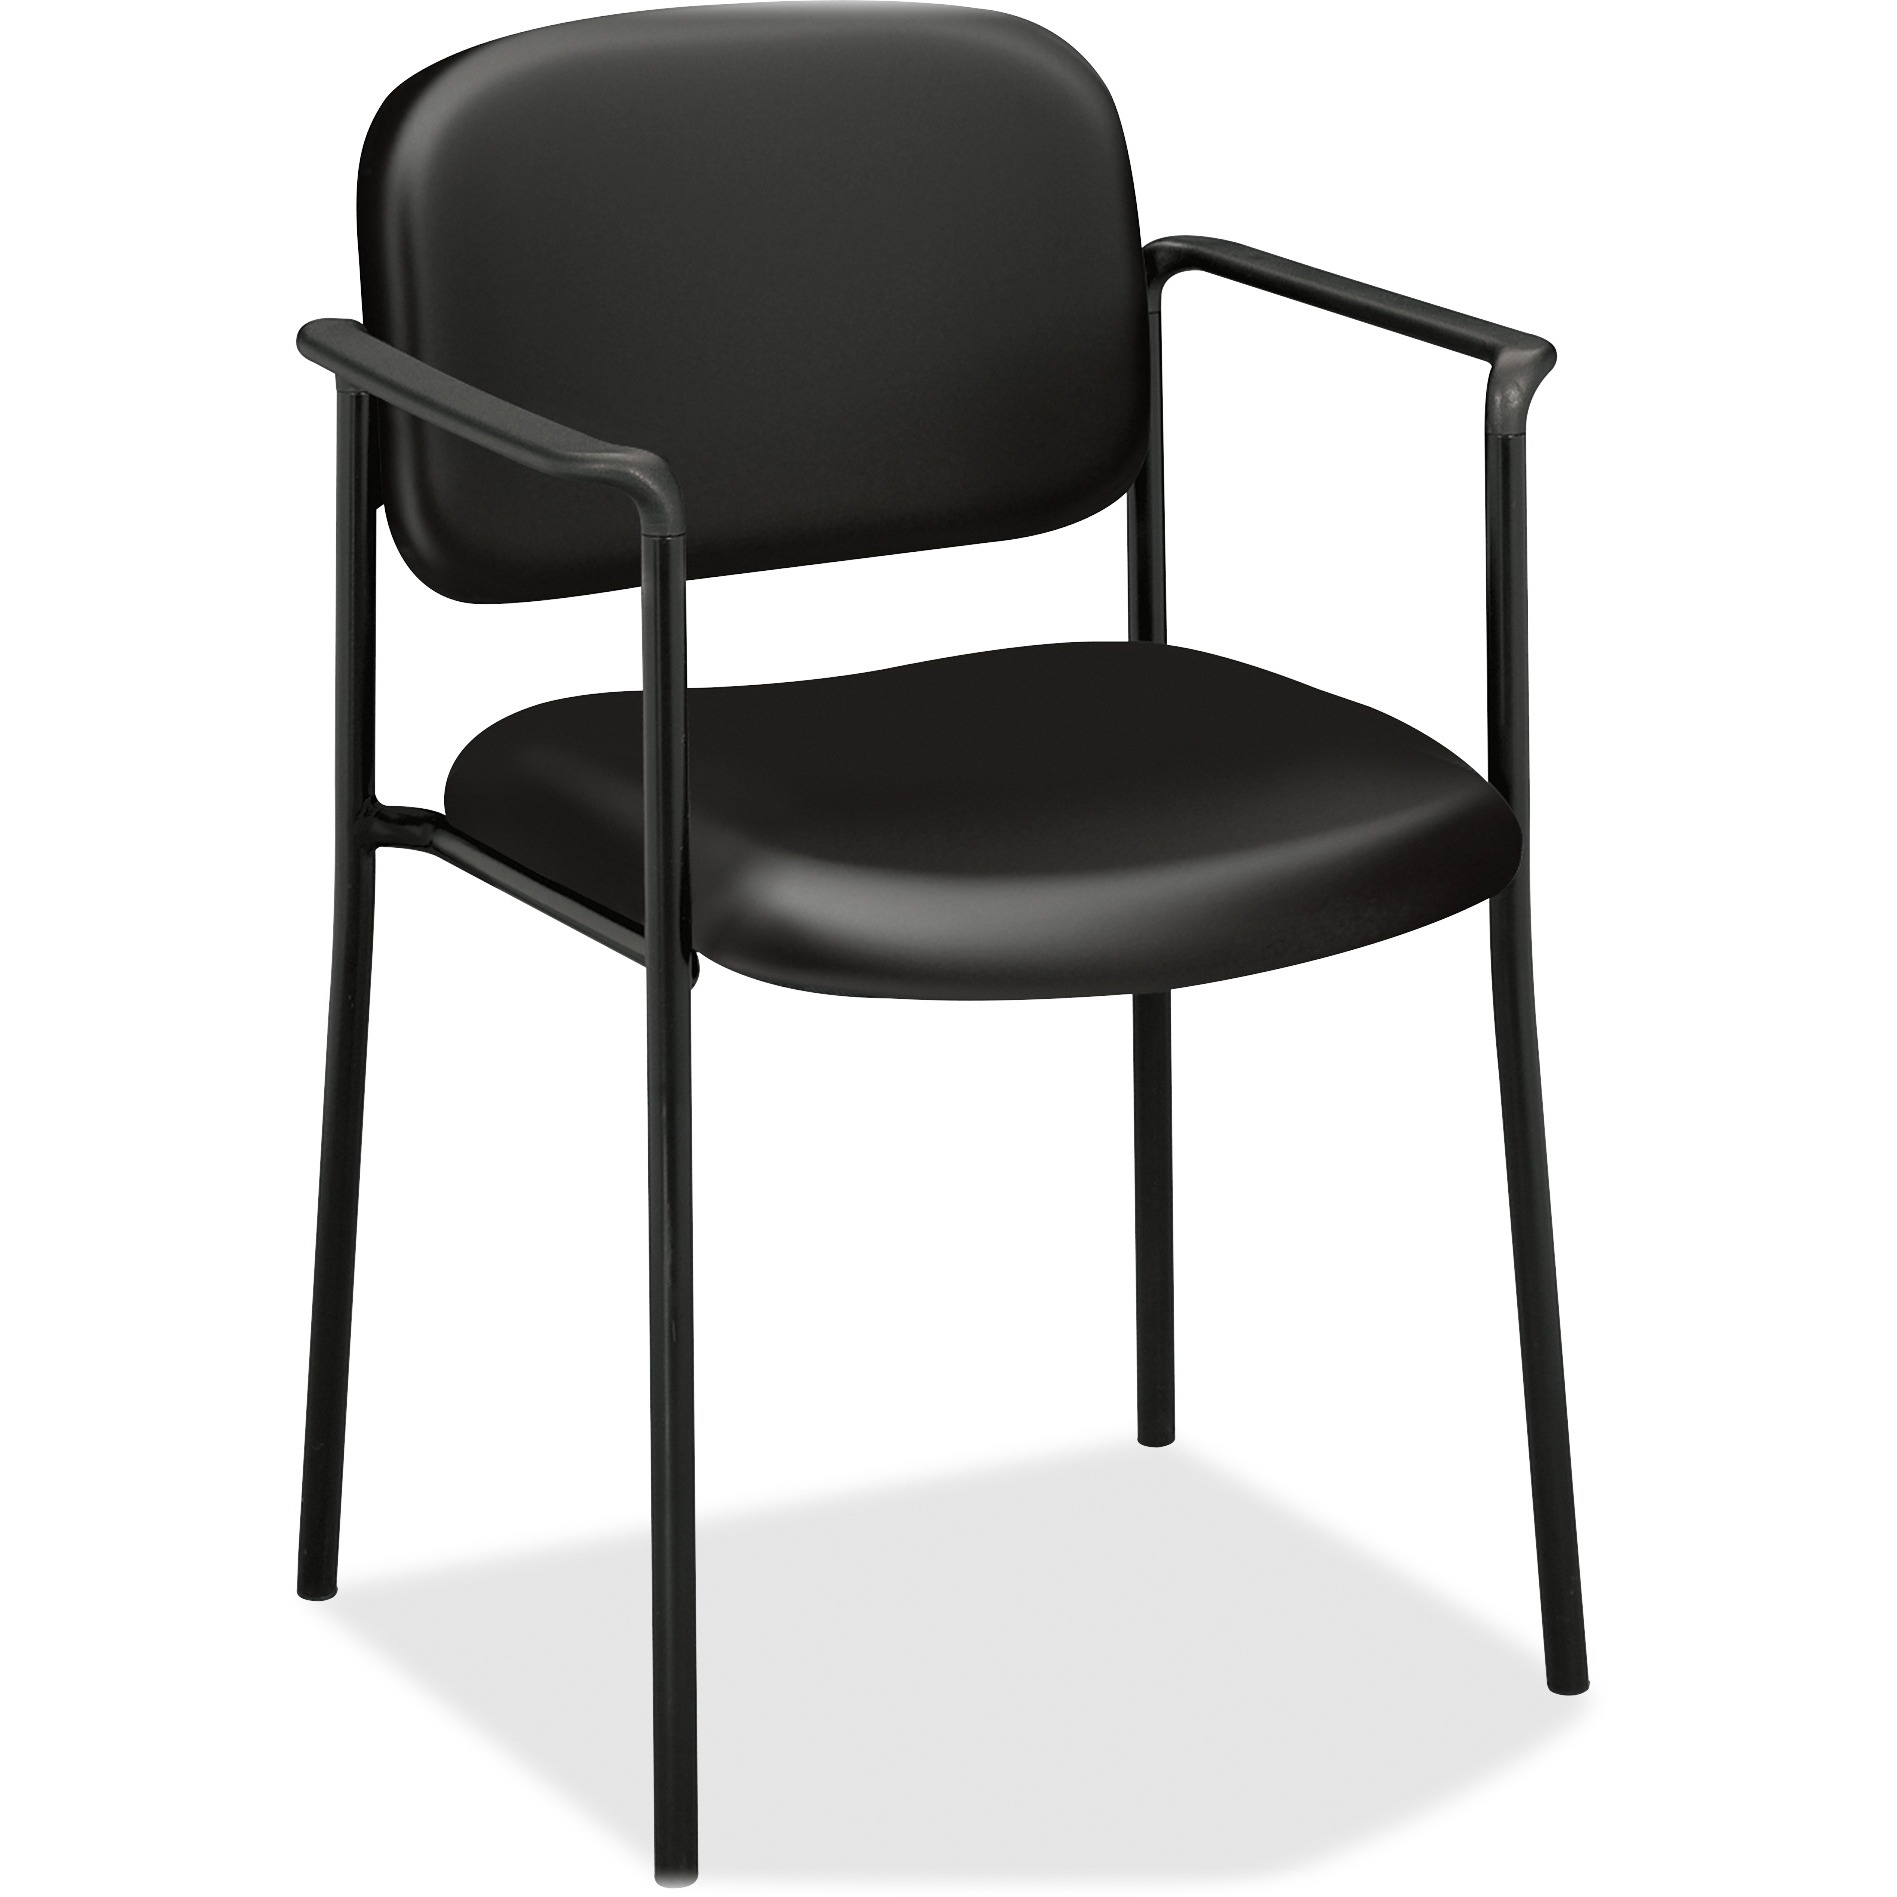 basyx VL616 Series Stacking Guest Reception Waiting Room Chair with Arms, Black Leather